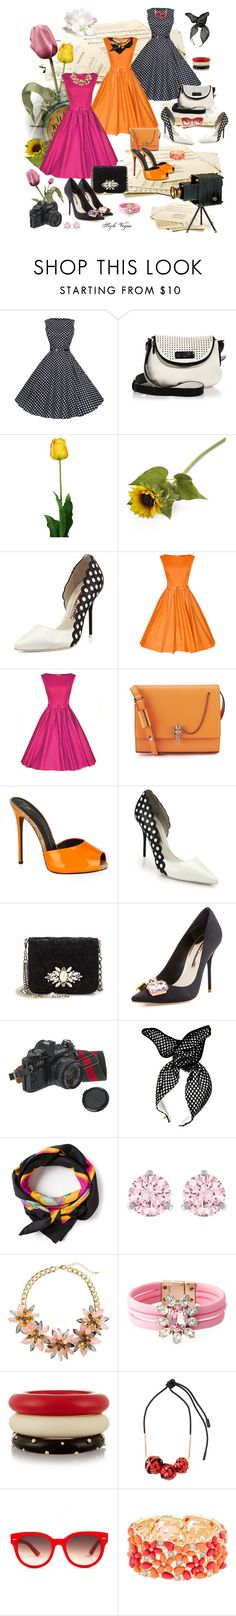 """Vintage romantic"" by lamipaz ❤ liked on Polyvore featuring Marc by Marc Jacobs, Laura Cole, Crate and Barrel, Sophia Webster, Carven, Giuseppe Zanotti, Dolce&Gabbana, American Eagle Outfitters, Hermès and Swarovski"